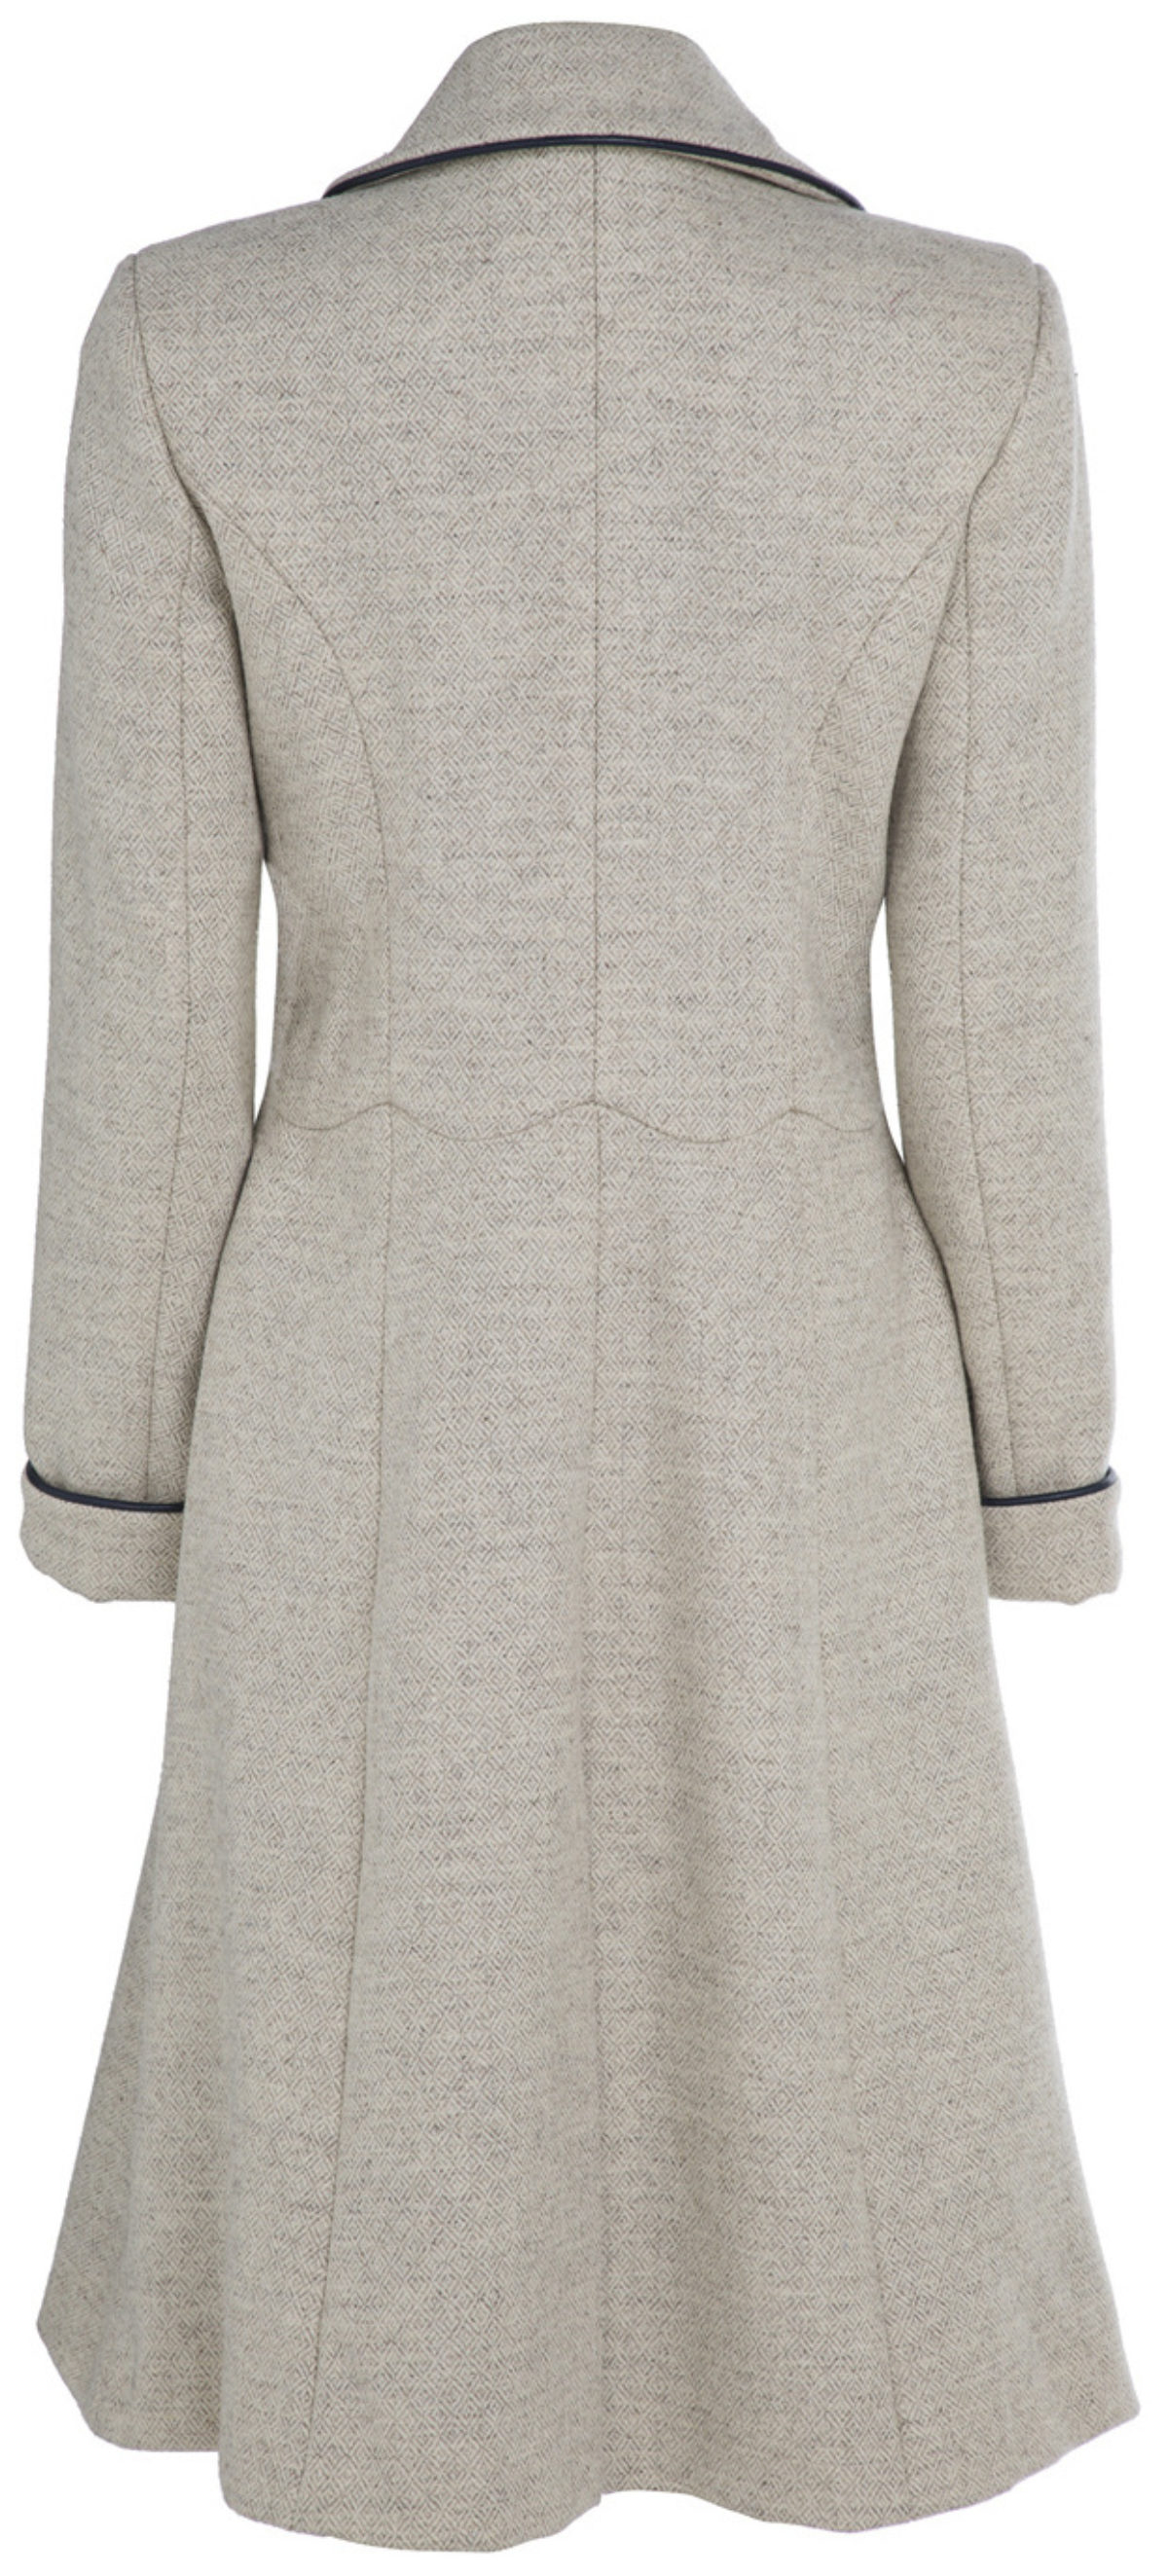 Pip Howeson Scallop Coat Back